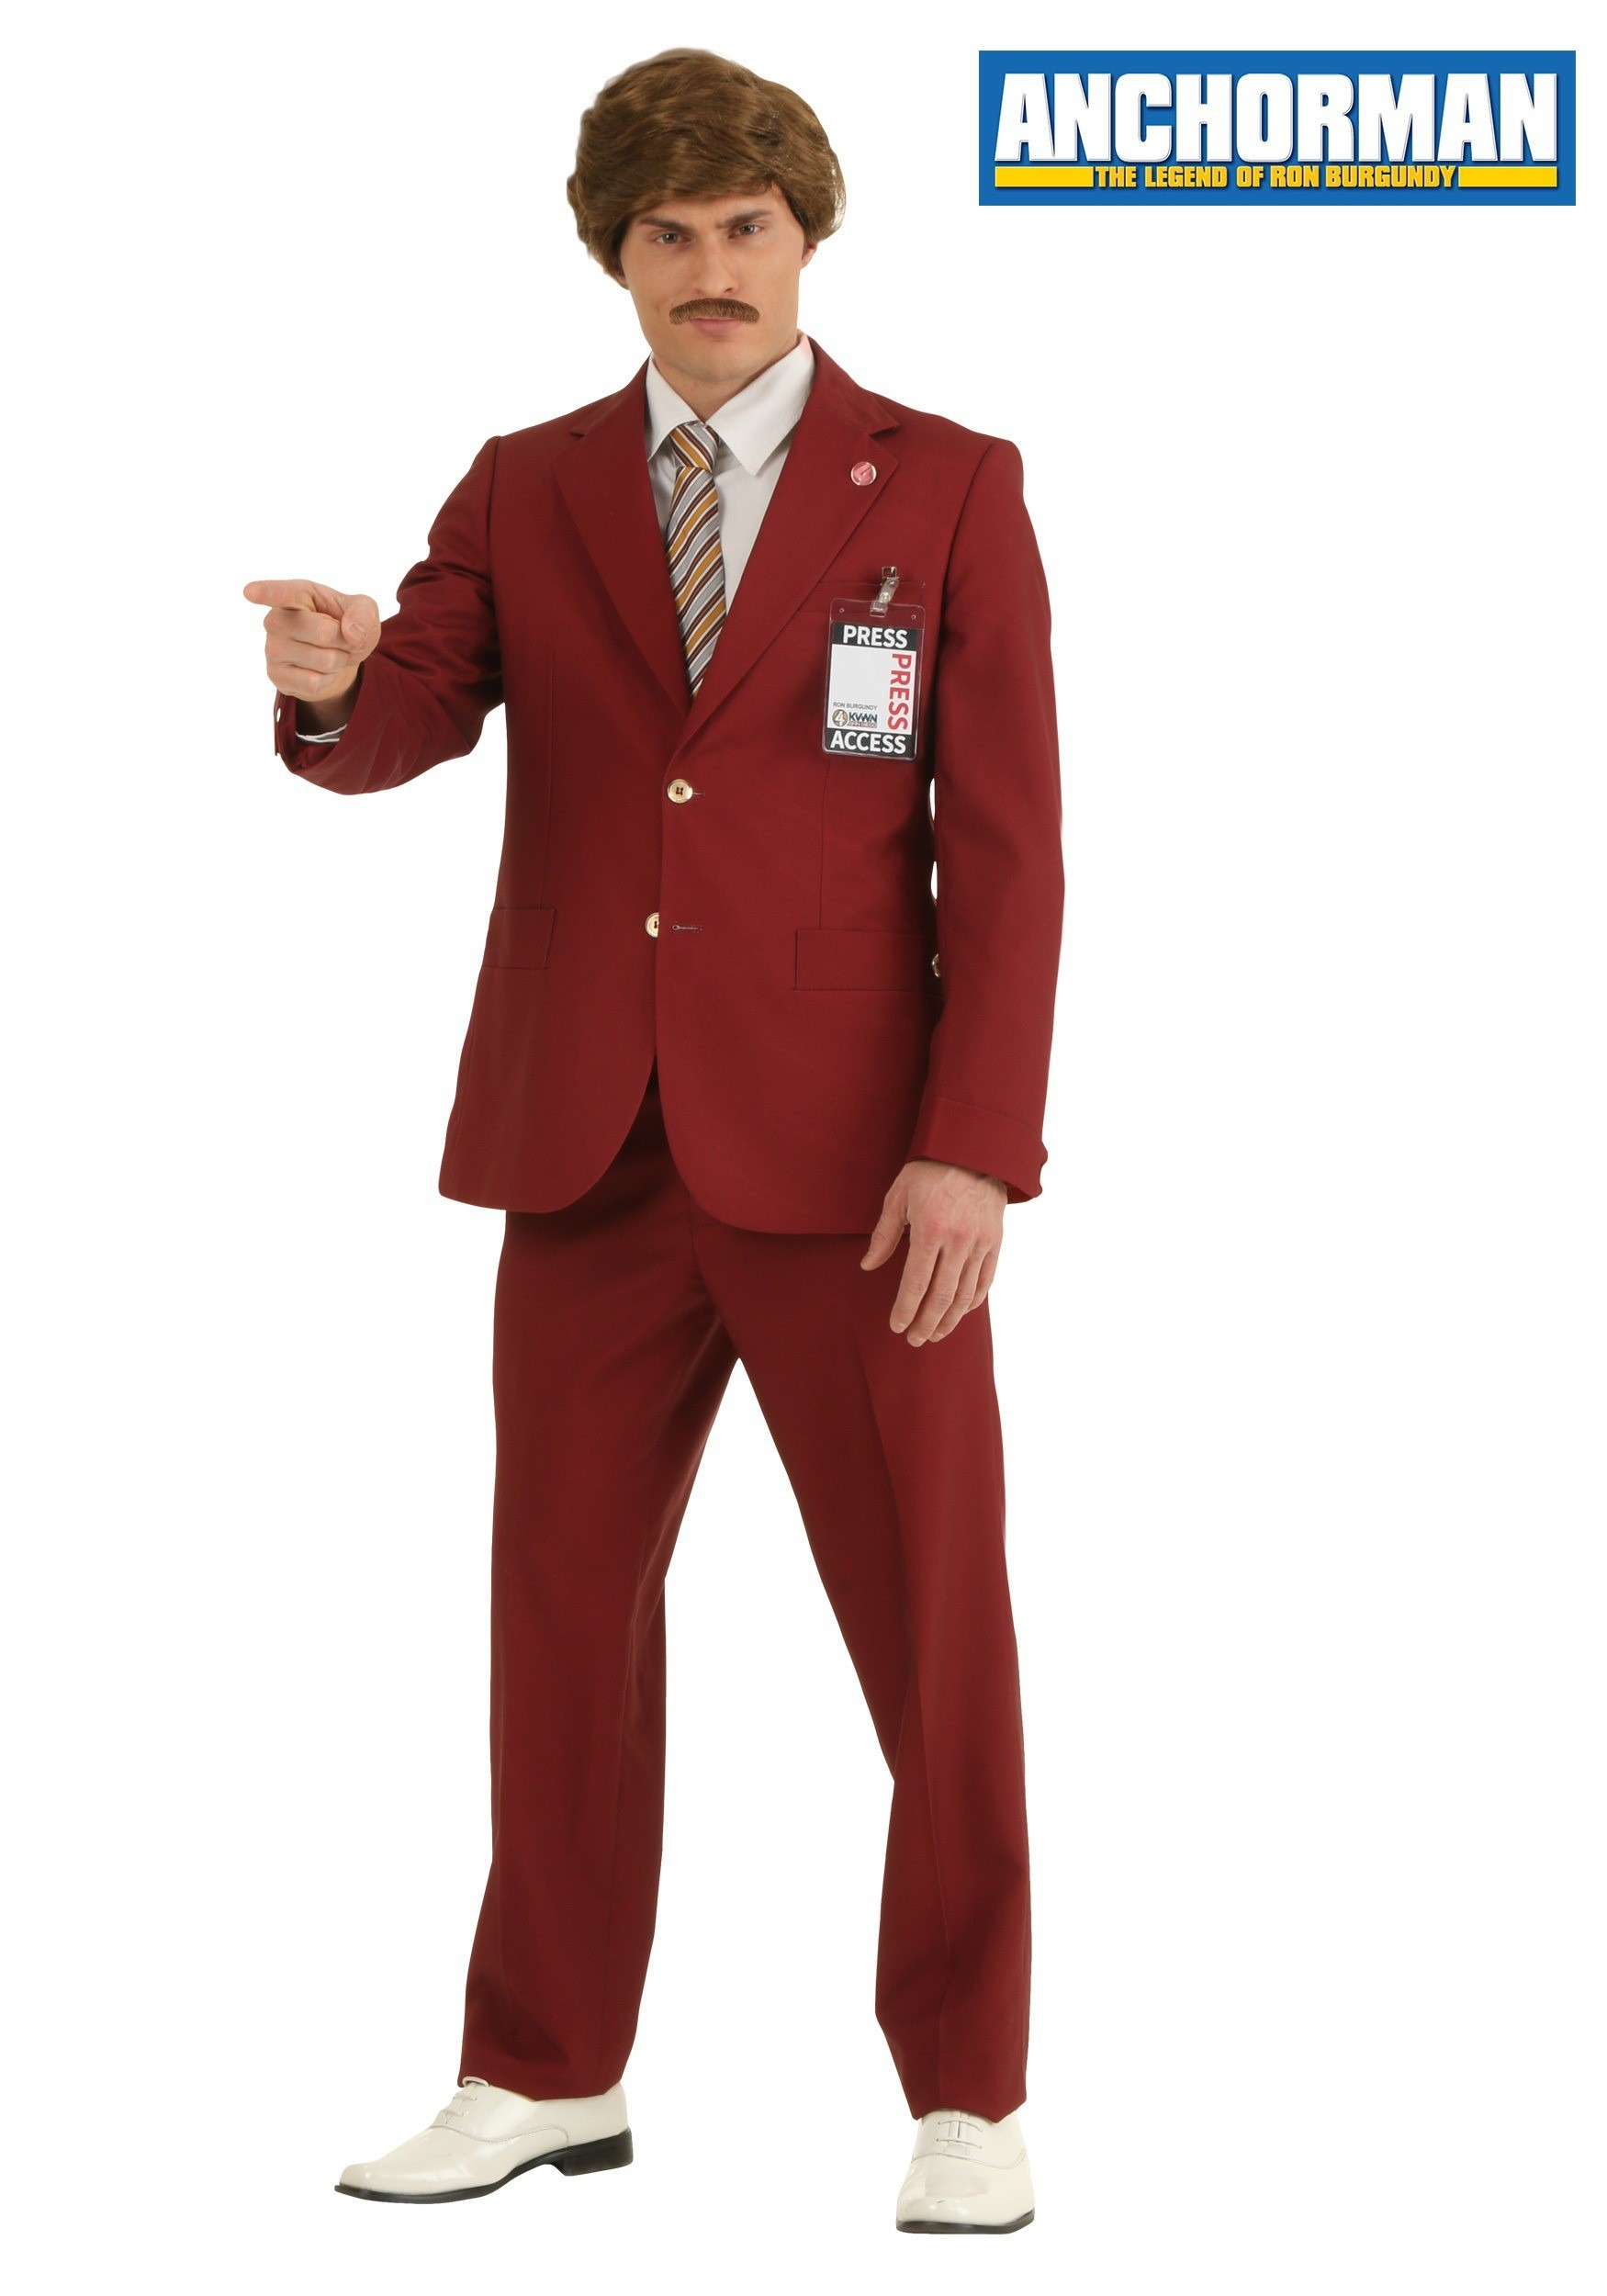 You'll be the top dog on Halloween when you decide to dress in this officially licensed Anchorman Ron Burgundy Adult Costume. Flaunt your unmatched style when you wear this classic jacket with matching pants, tie and official channel 4 pin/5(8).